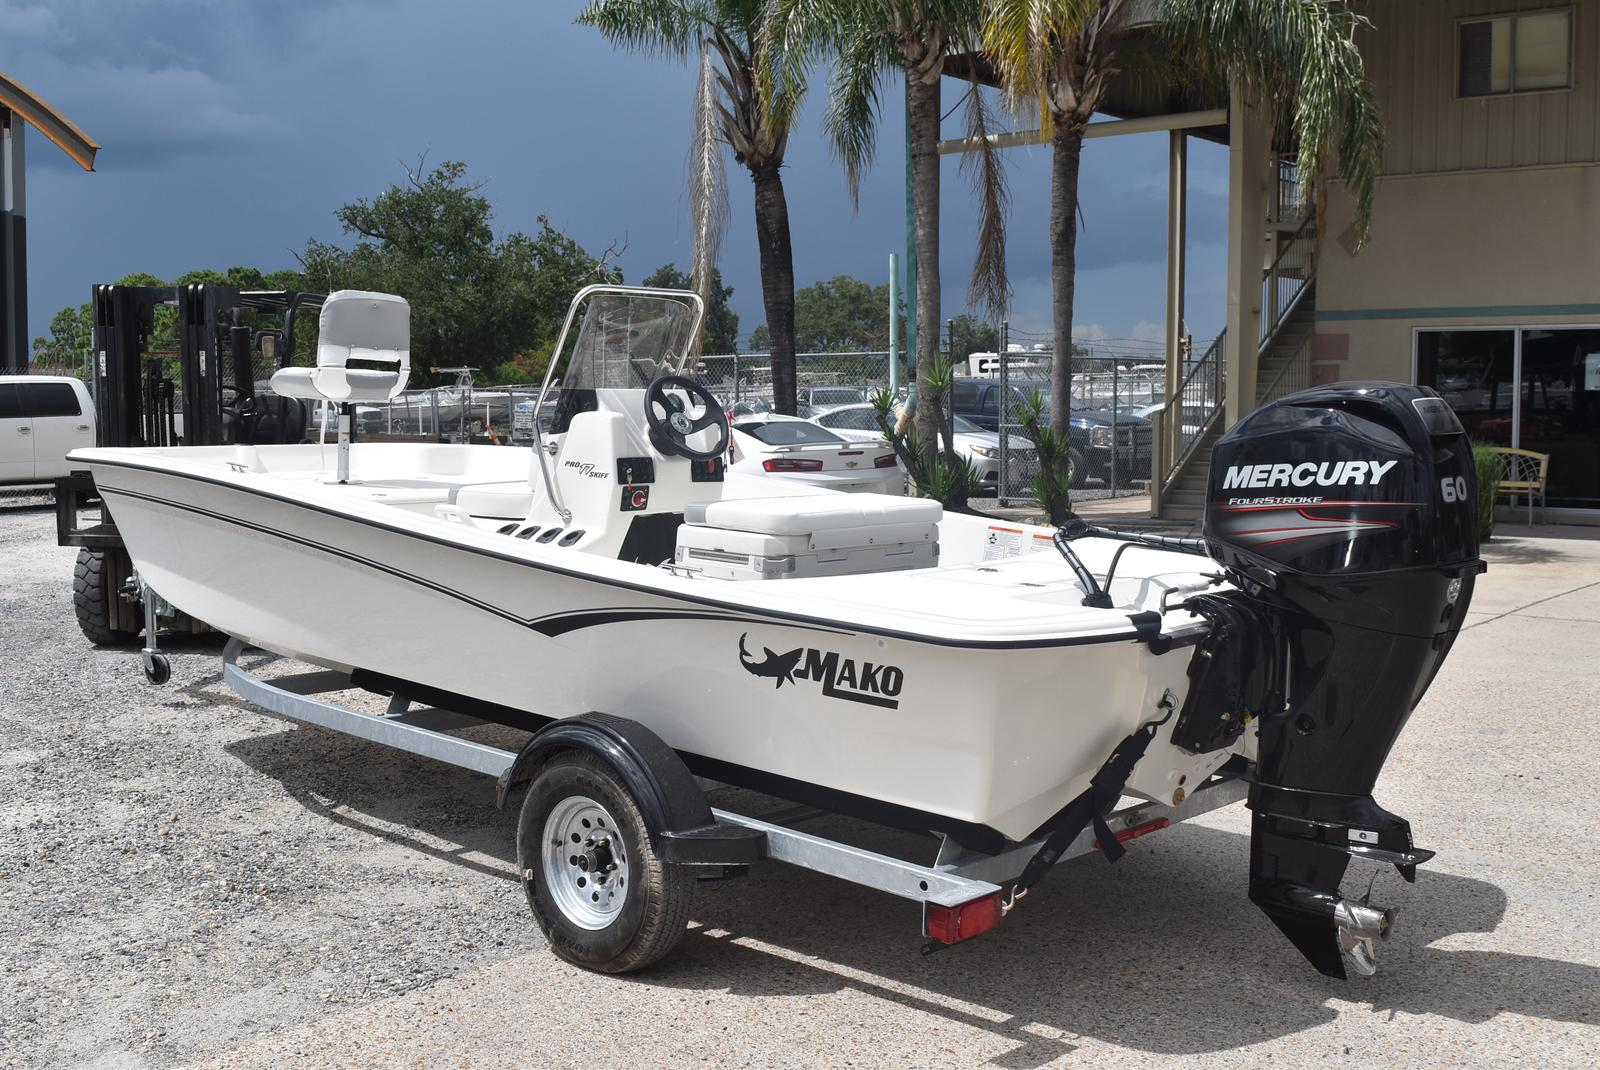 2020 Mako boat for sale, model of the boat is Pro Skiff 17, 75 ELPT & Image # 159 of 702